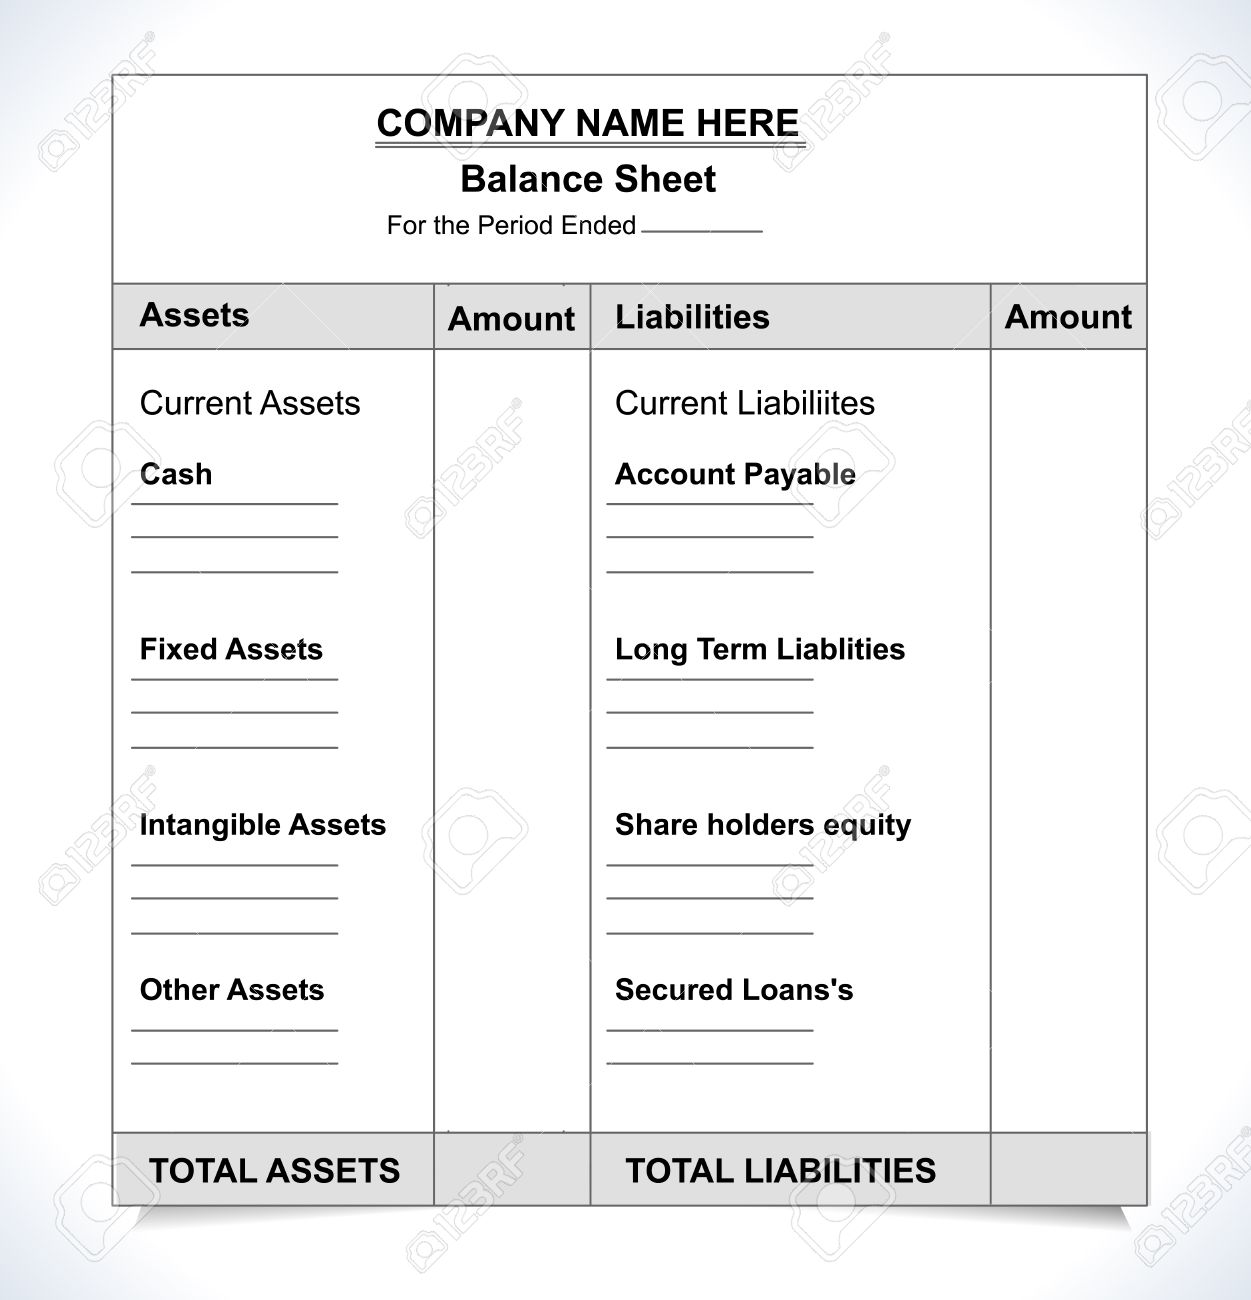 Balance Sheet Format, Unfill Paper Balance Invoice Form Royalty ...